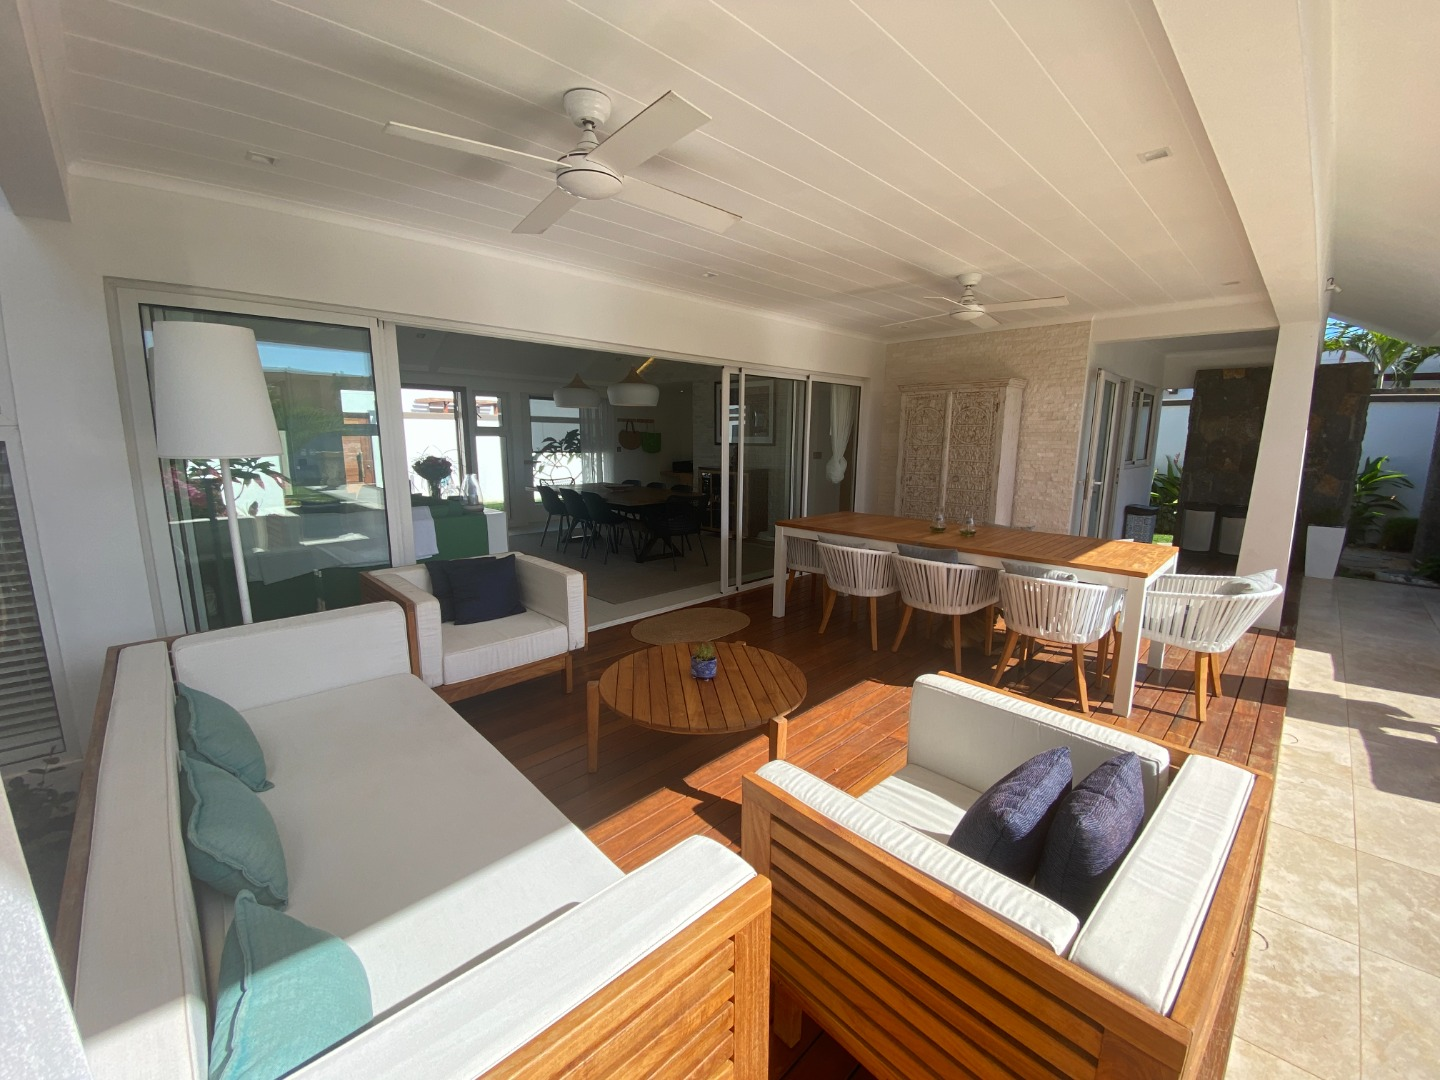 4 Bedroom House For Sale in Grand Baie